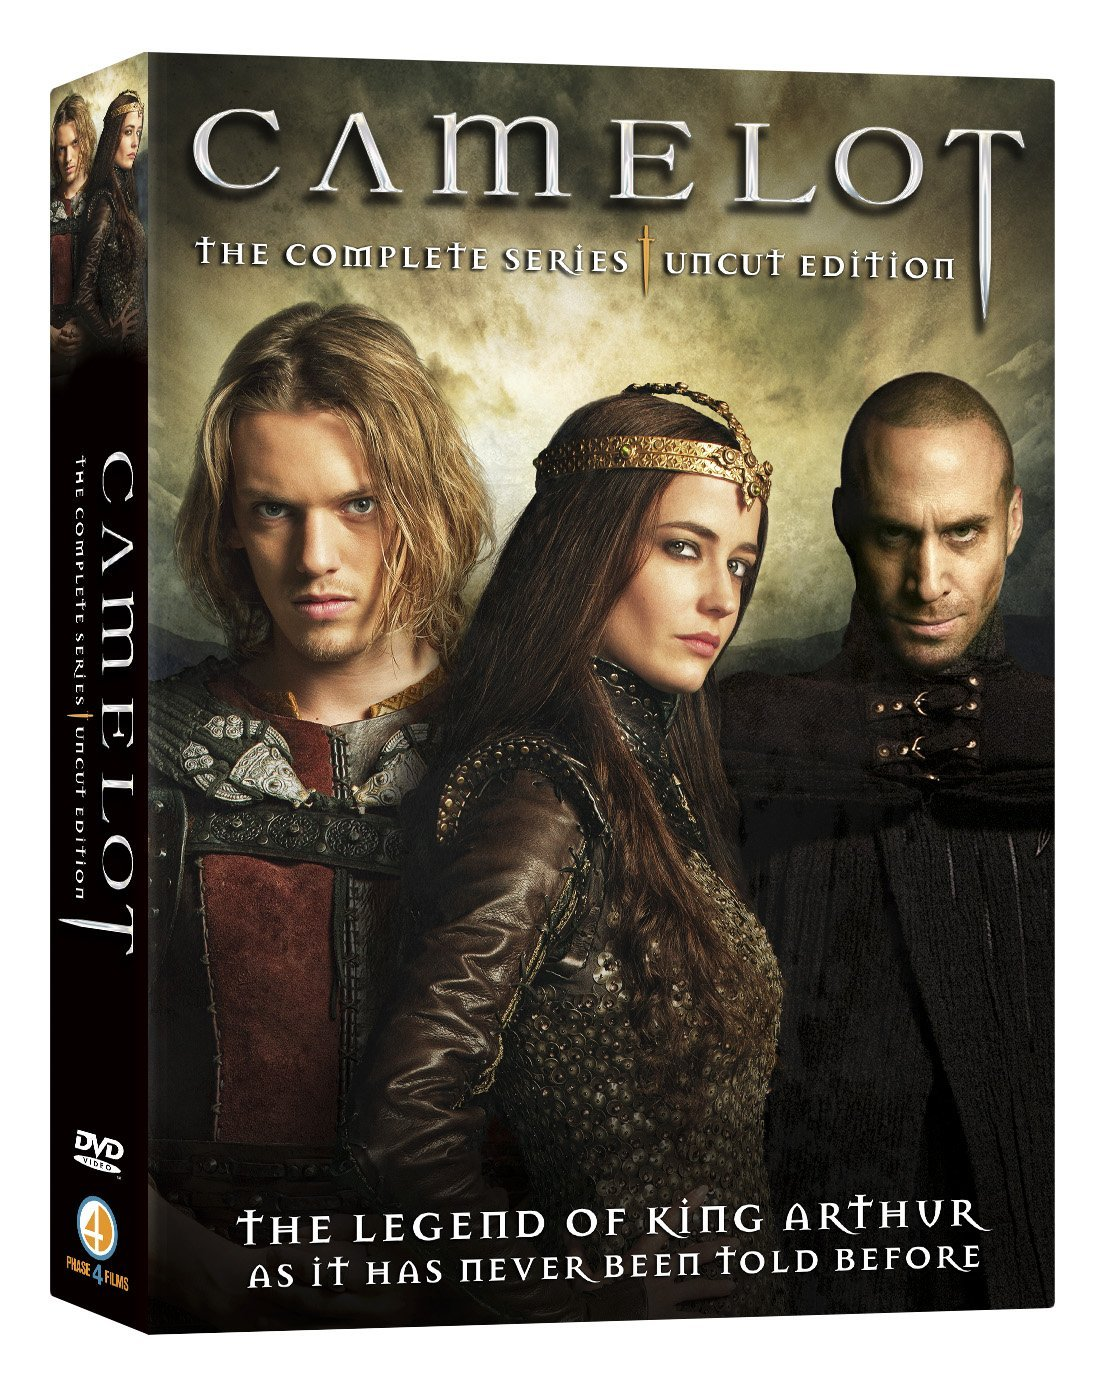 camelot the complete series uncut edition orcasound. Black Bedroom Furniture Sets. Home Design Ideas